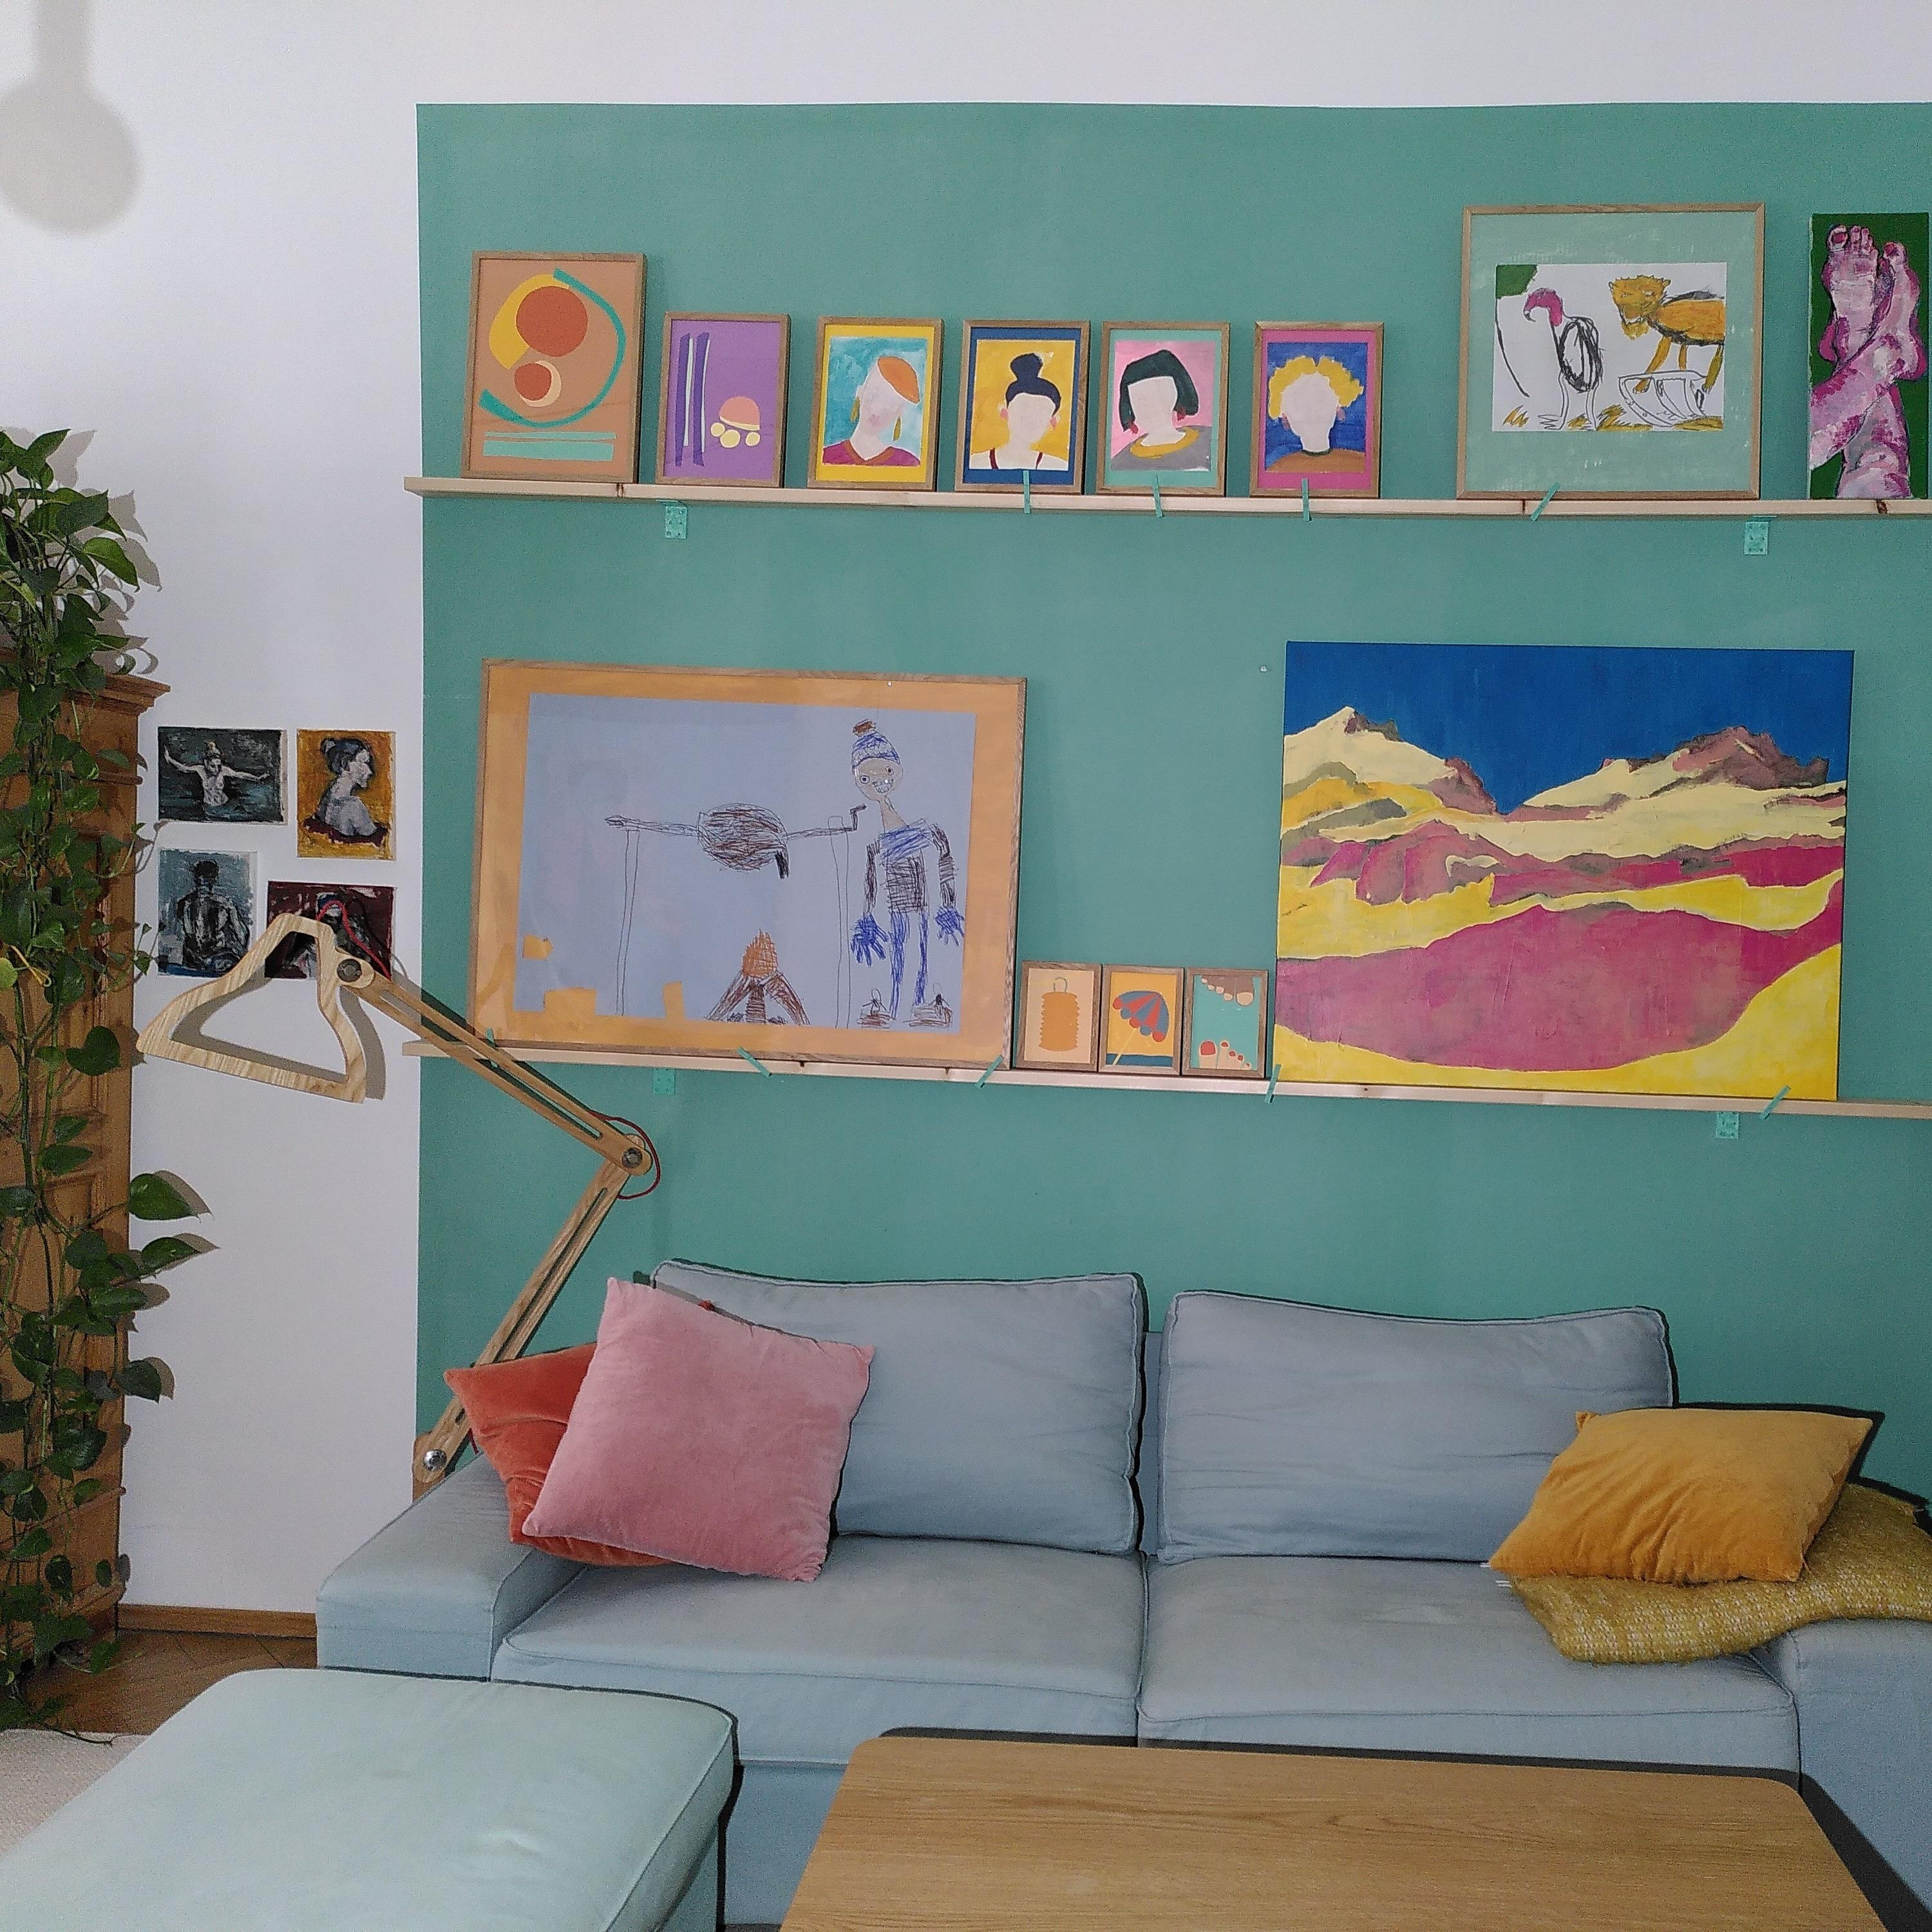 #Farbenliebe #Gallerywall #couch